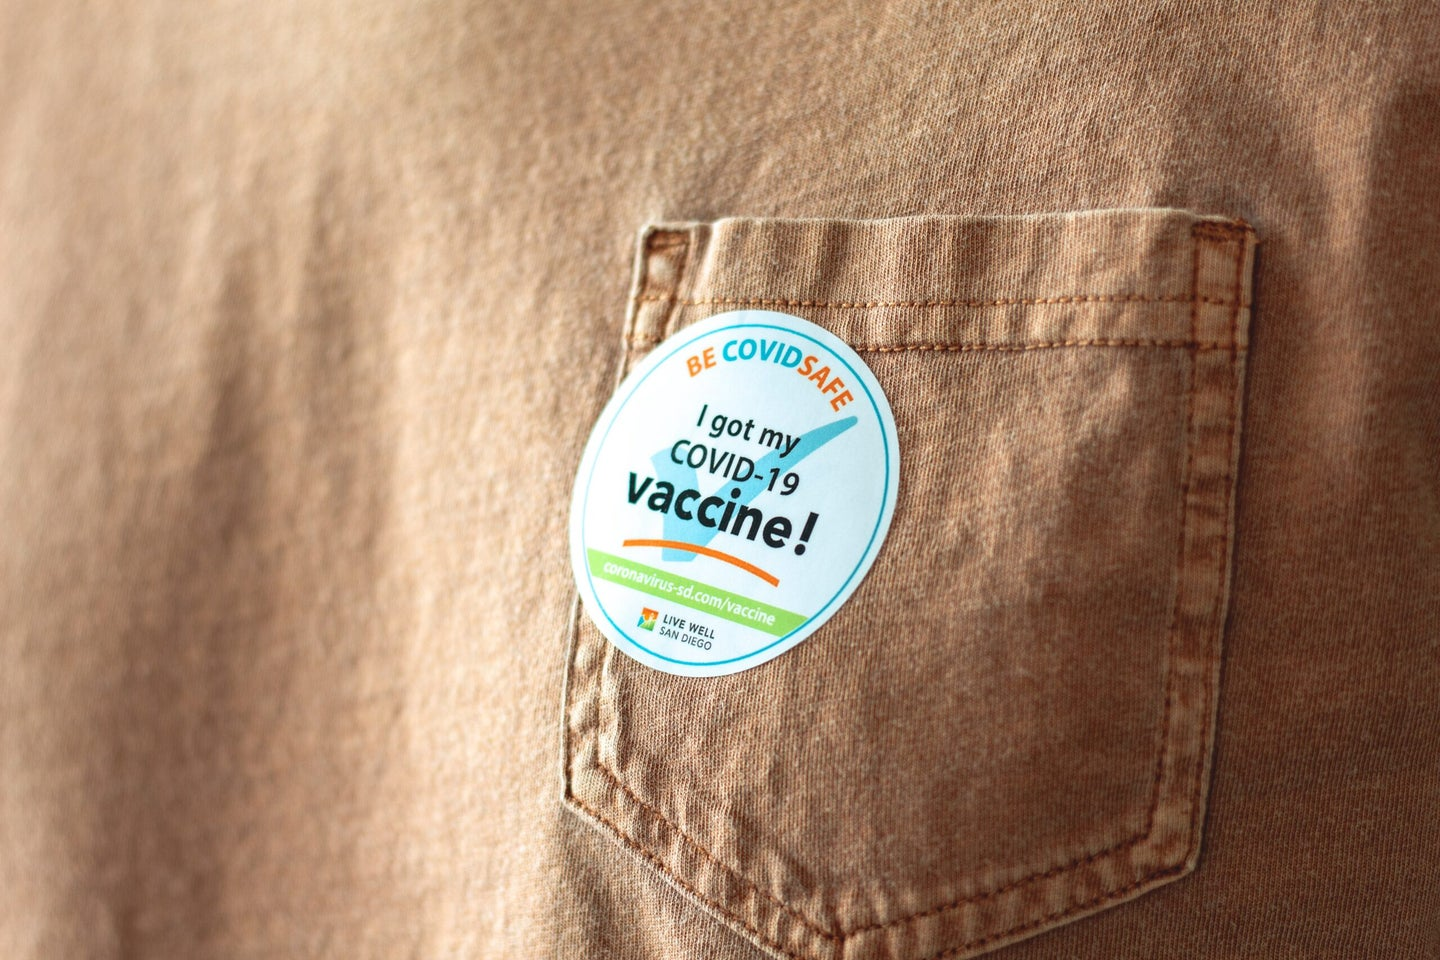 A sticker placed on the pocket of a brown tee shirt, which reads: I got my COVID-19 vaccine.